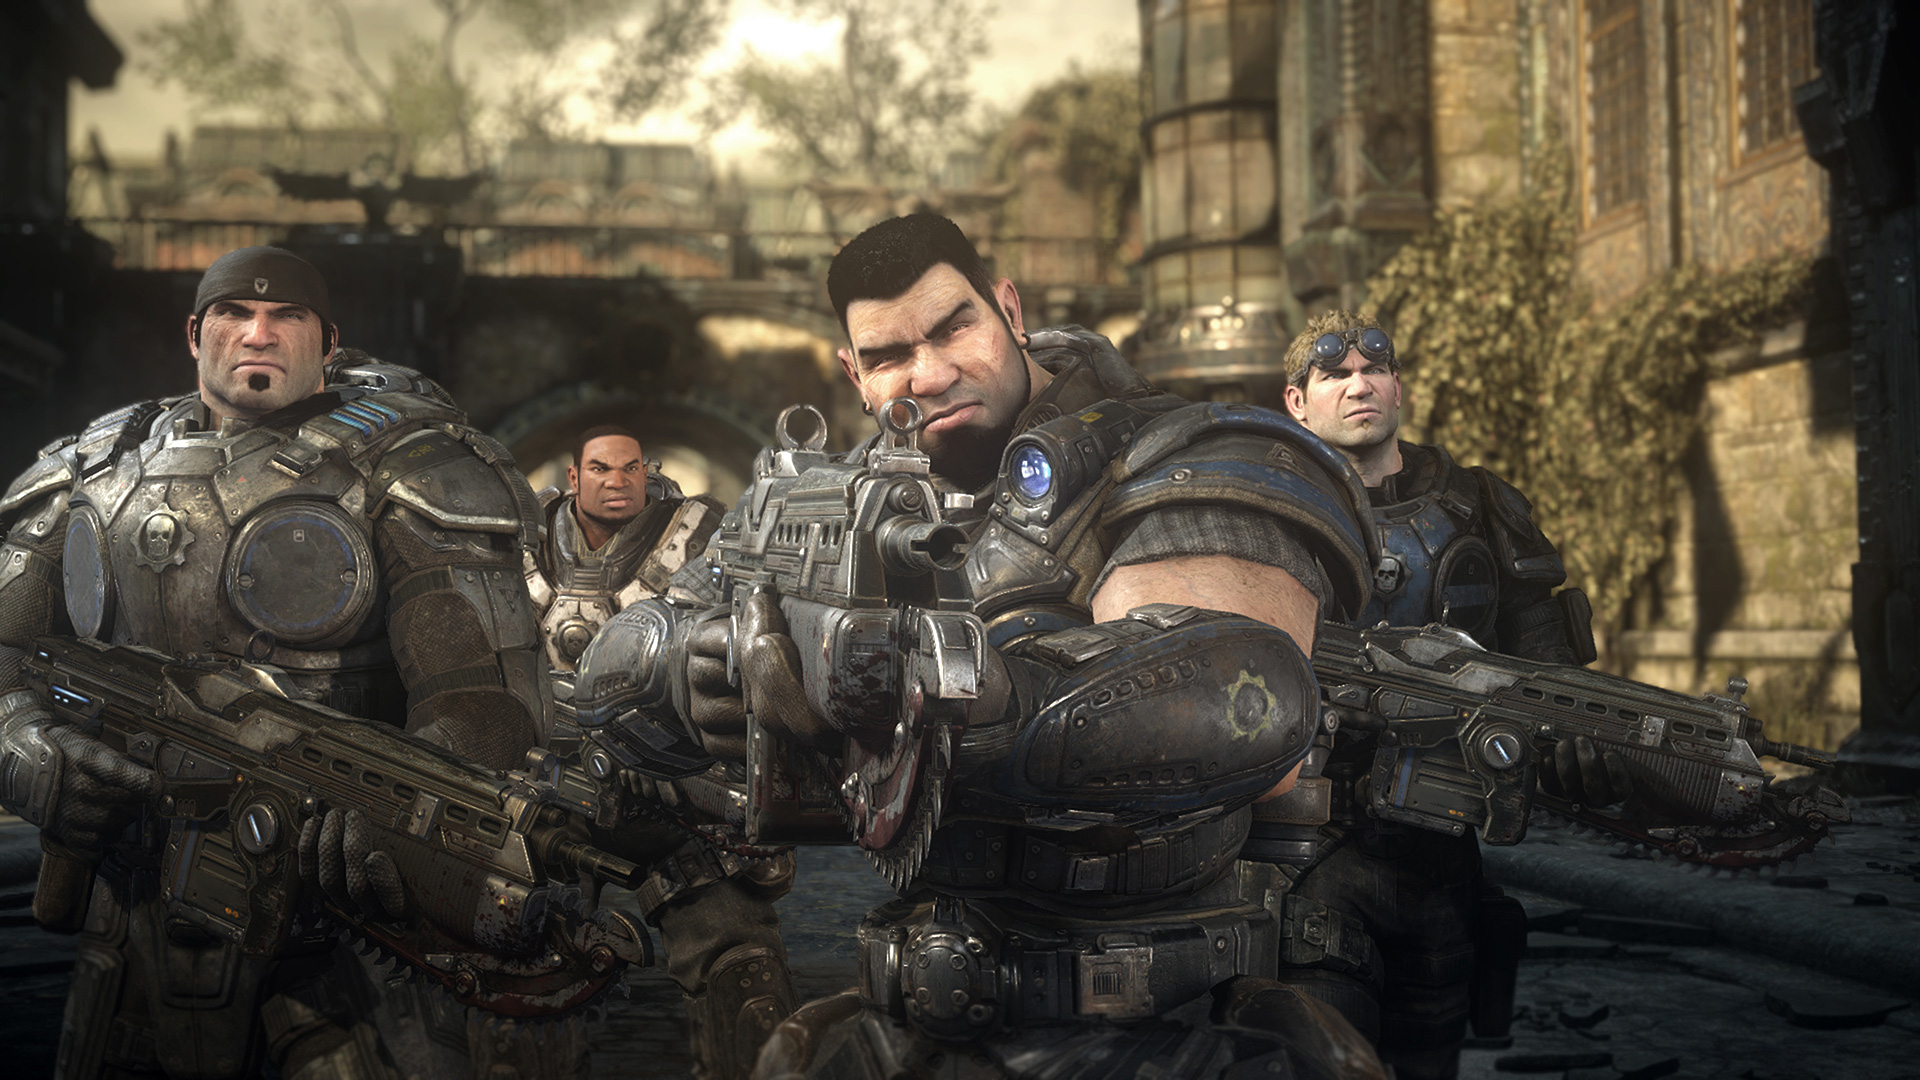 Xbox Ultimate Game Sale slashes prices on Gears of War, Halo, The Witcher, Just Cause and more